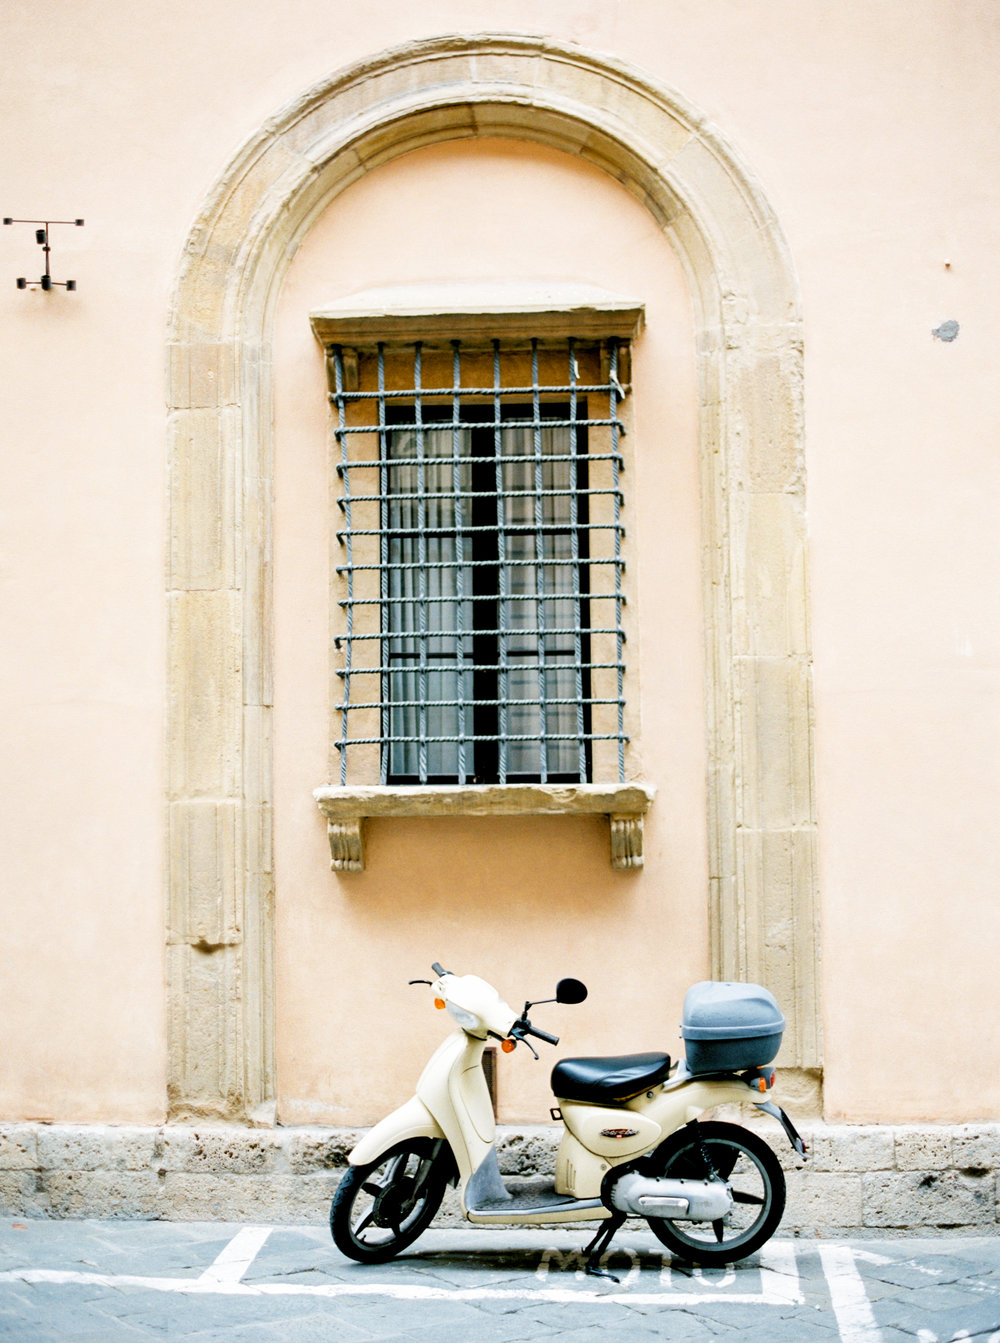 Classic Amalfi Coast. See more of Siena now on Cottage Hill.